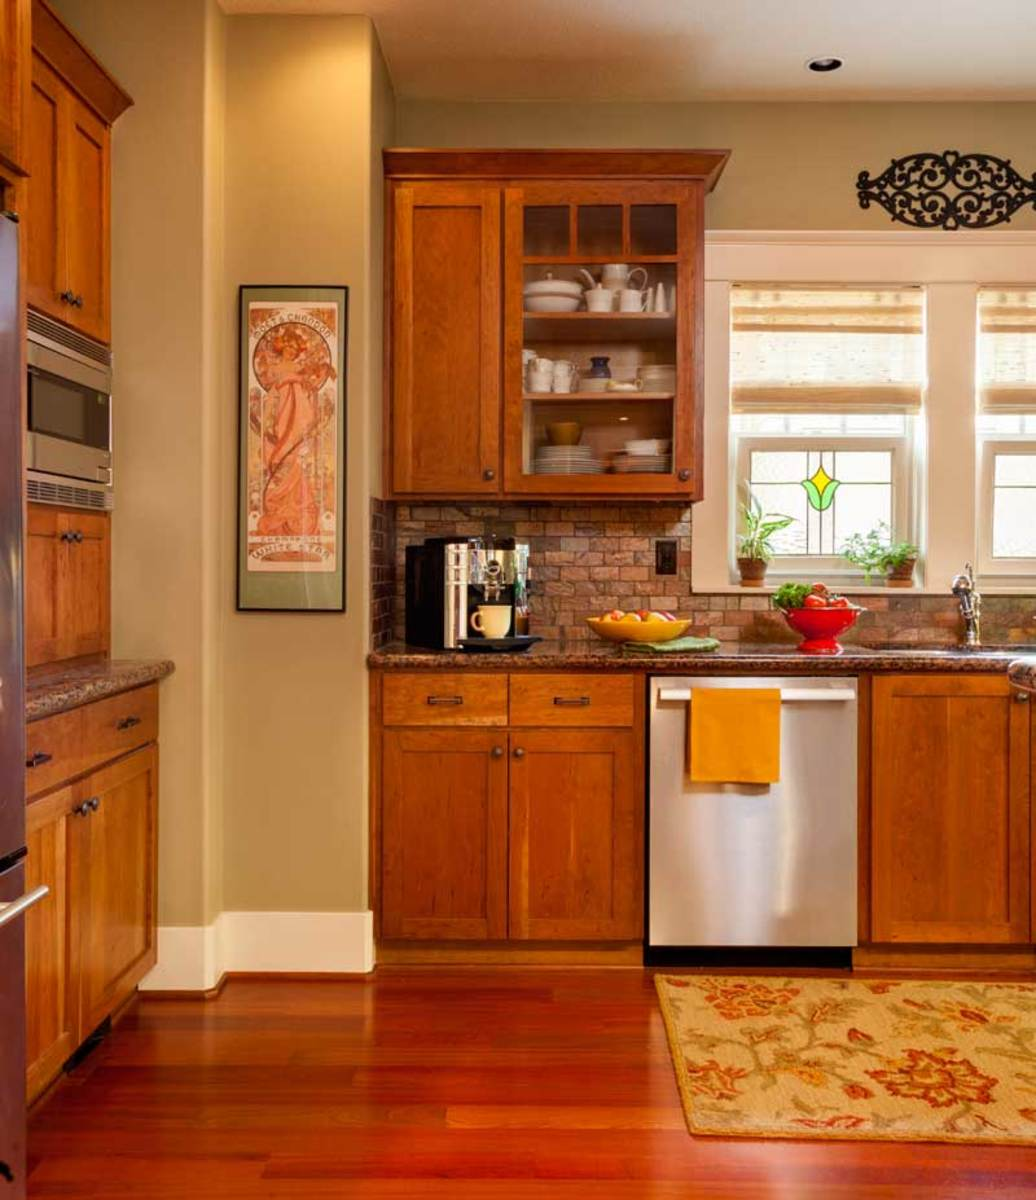 Strong, natural materials define the kitchen: cherry cabinets, granite countertops, travertine tile, and stainless steel.